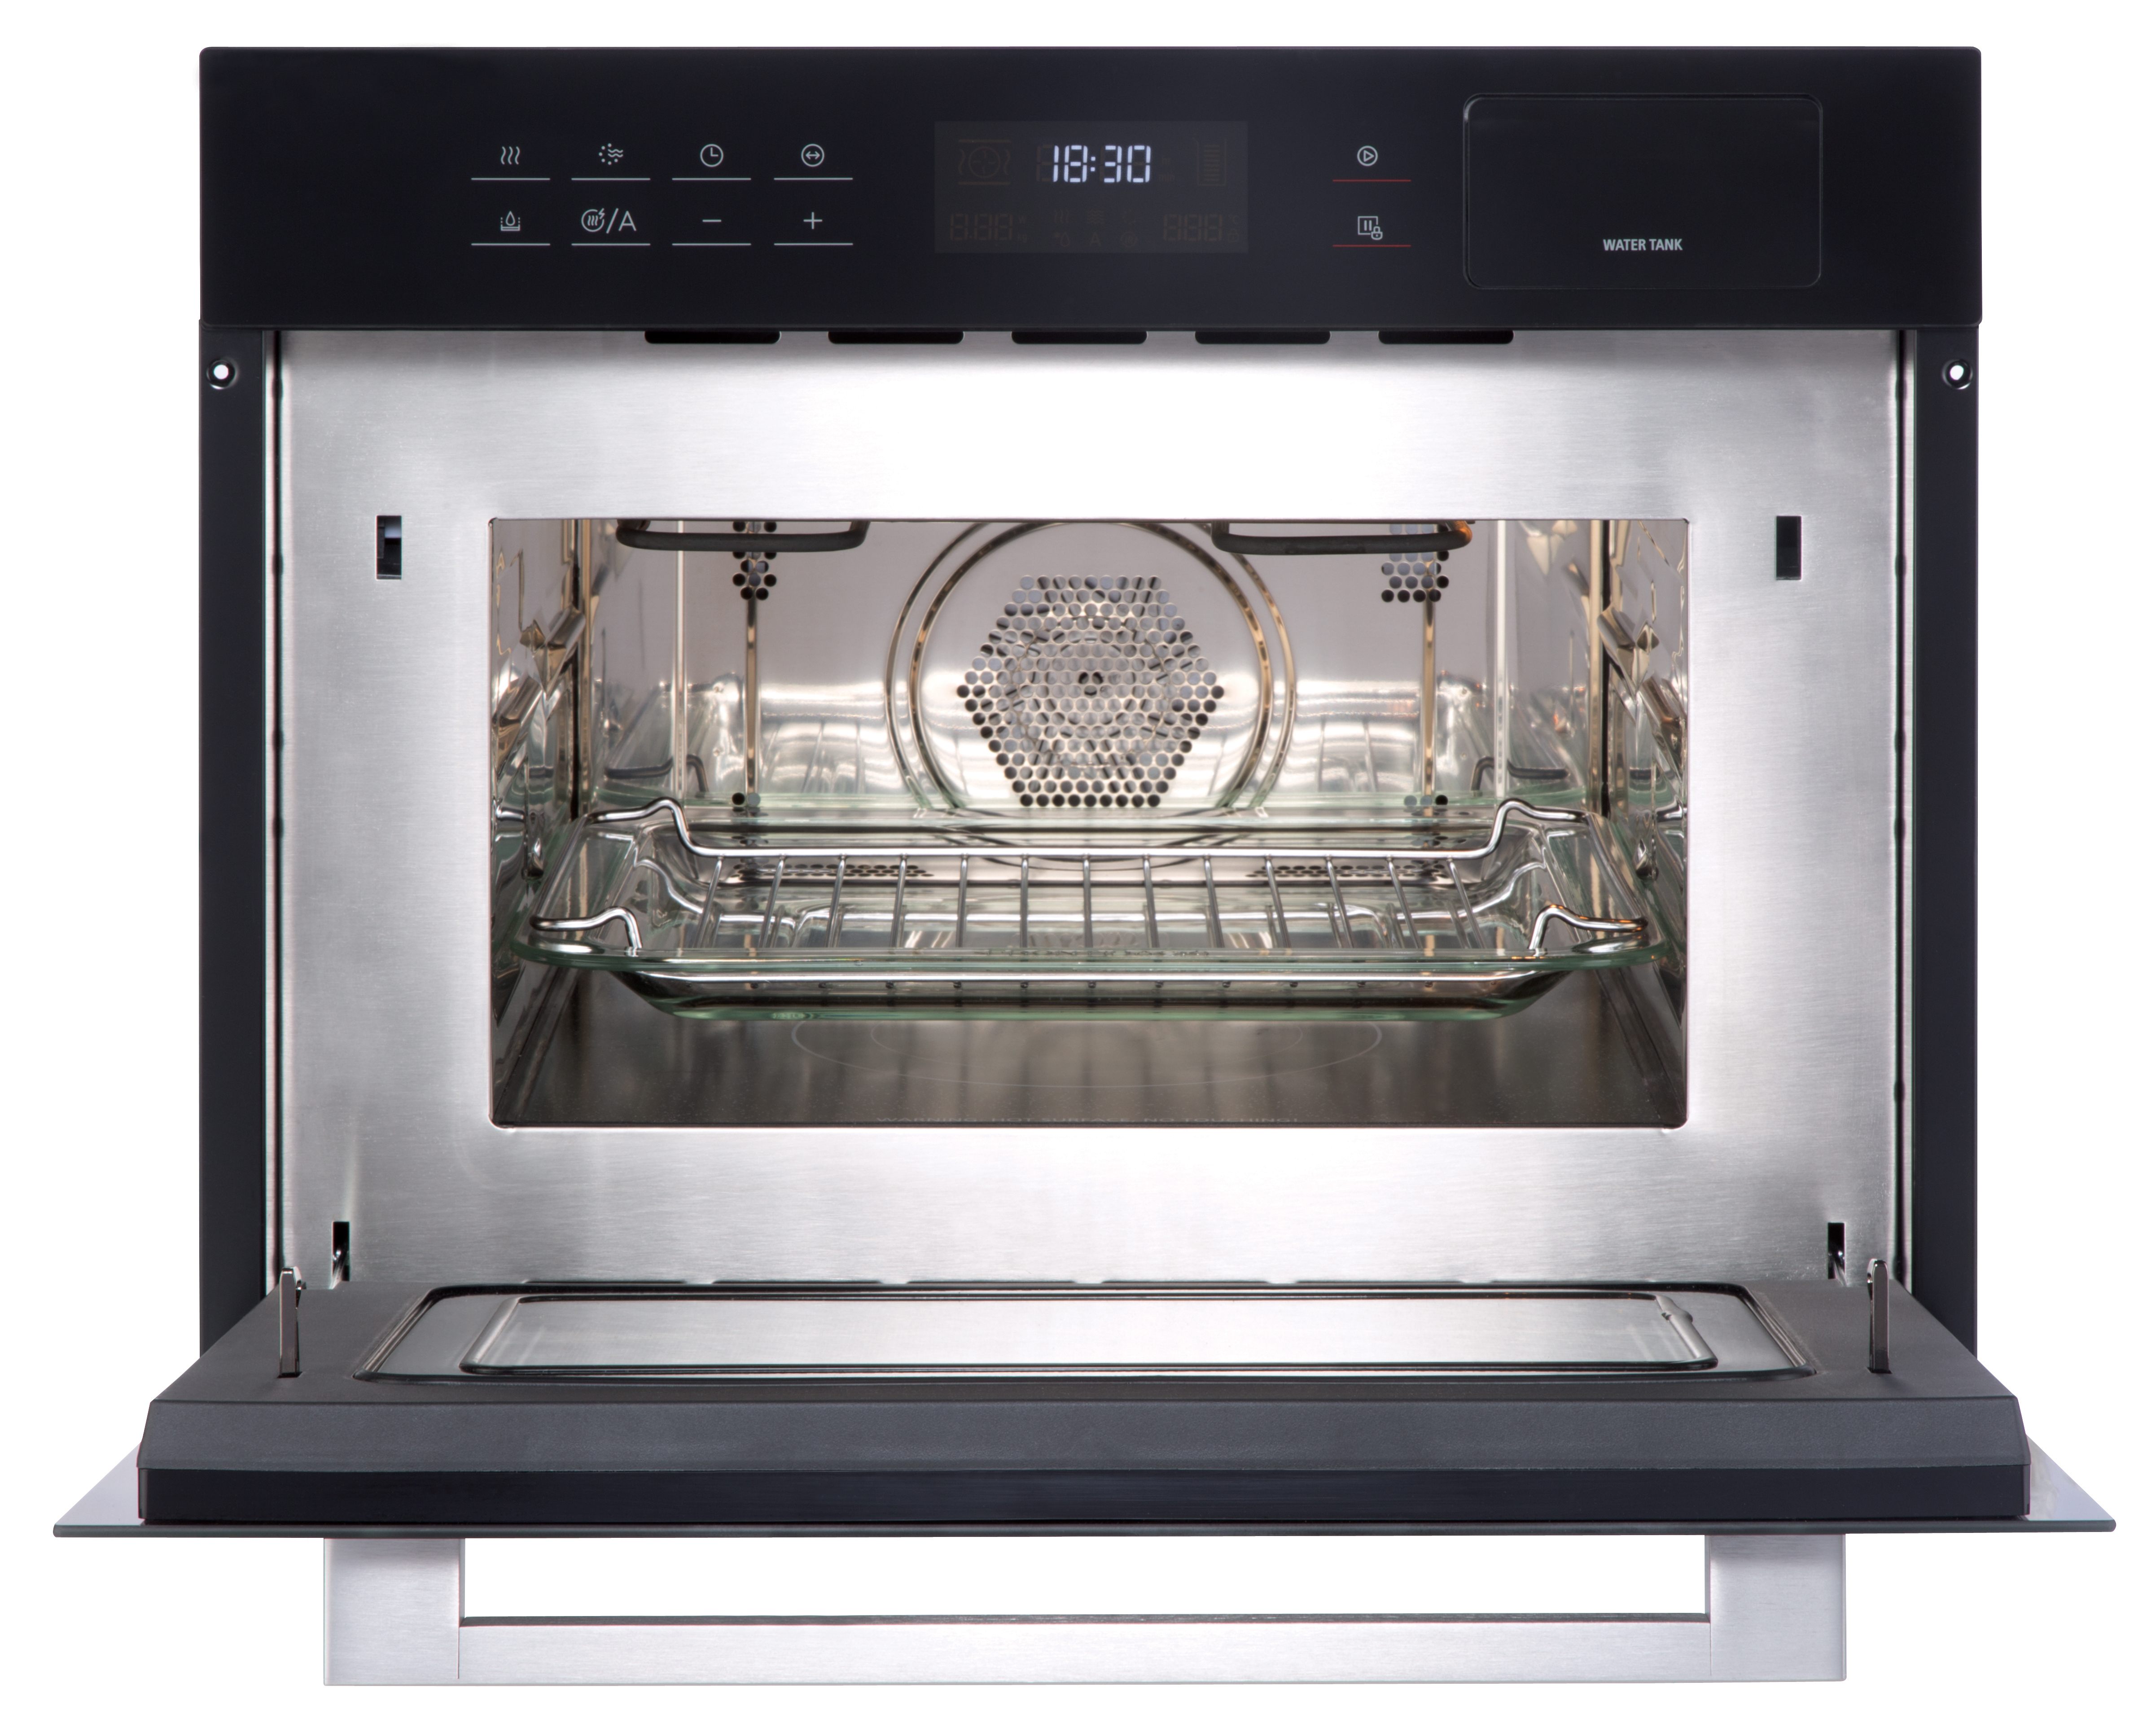 New World Suite Compact Oven Microwave Nw 45cm Black